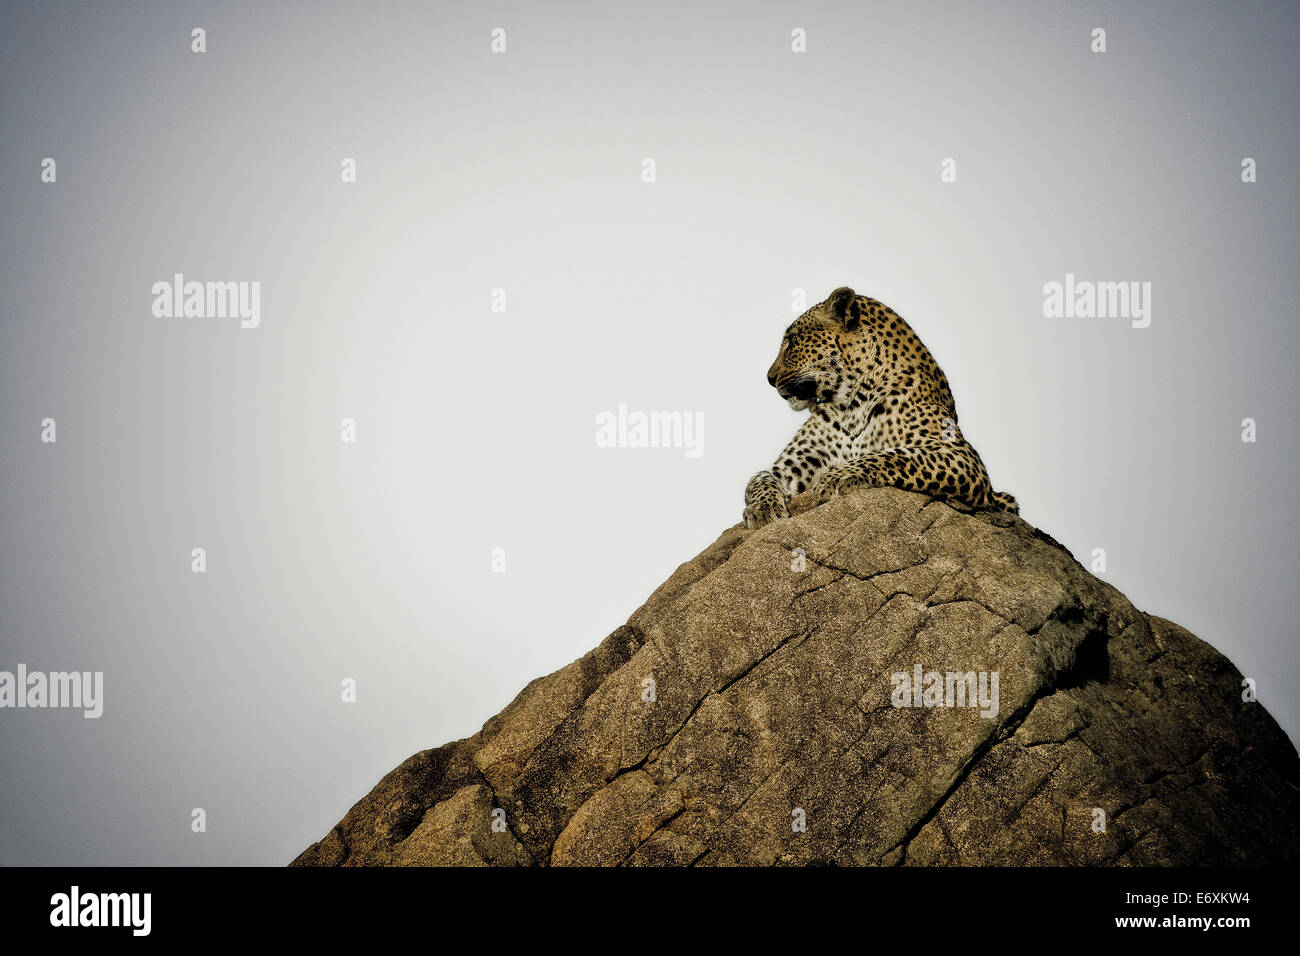 Leopard lying on a rock, Sabi Sands Game Reserve, South Africa, Africa - Stock Image